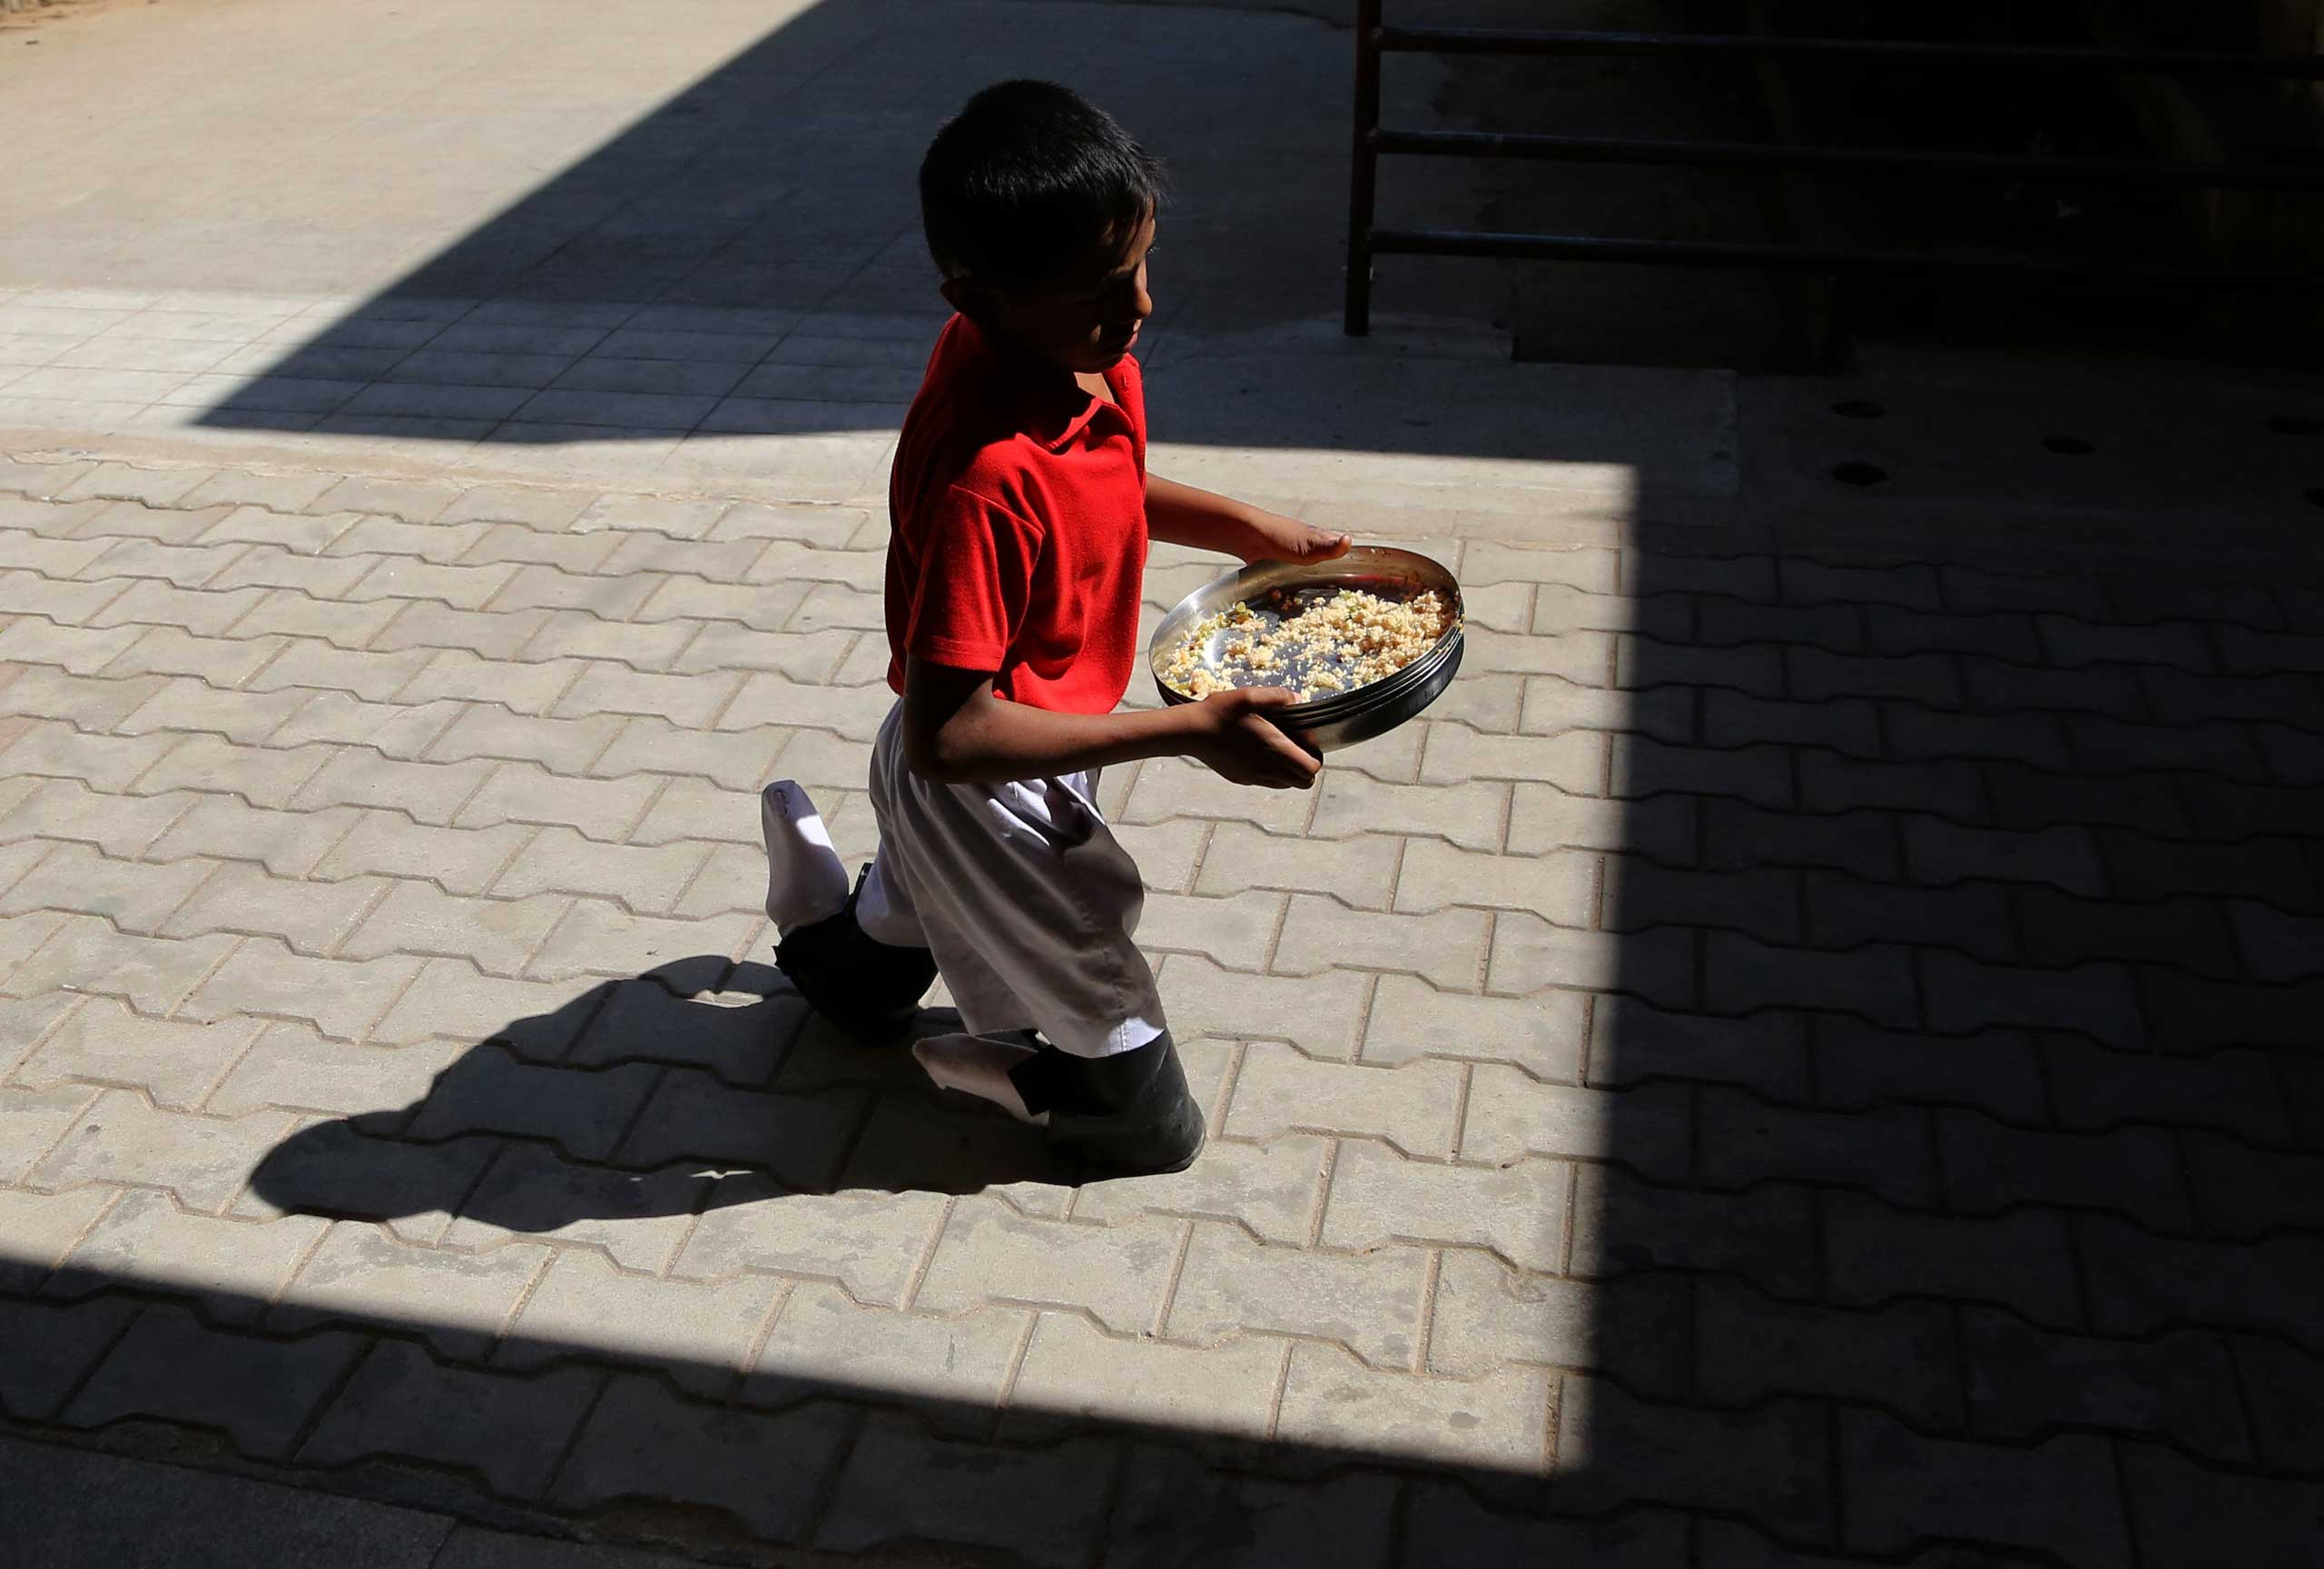 Dec. 3, 2014. A disabled child carries plates after having his lunch at the Association of People with Disability run school in Bangalore, India, on the International Day of Persons with Disabilities.